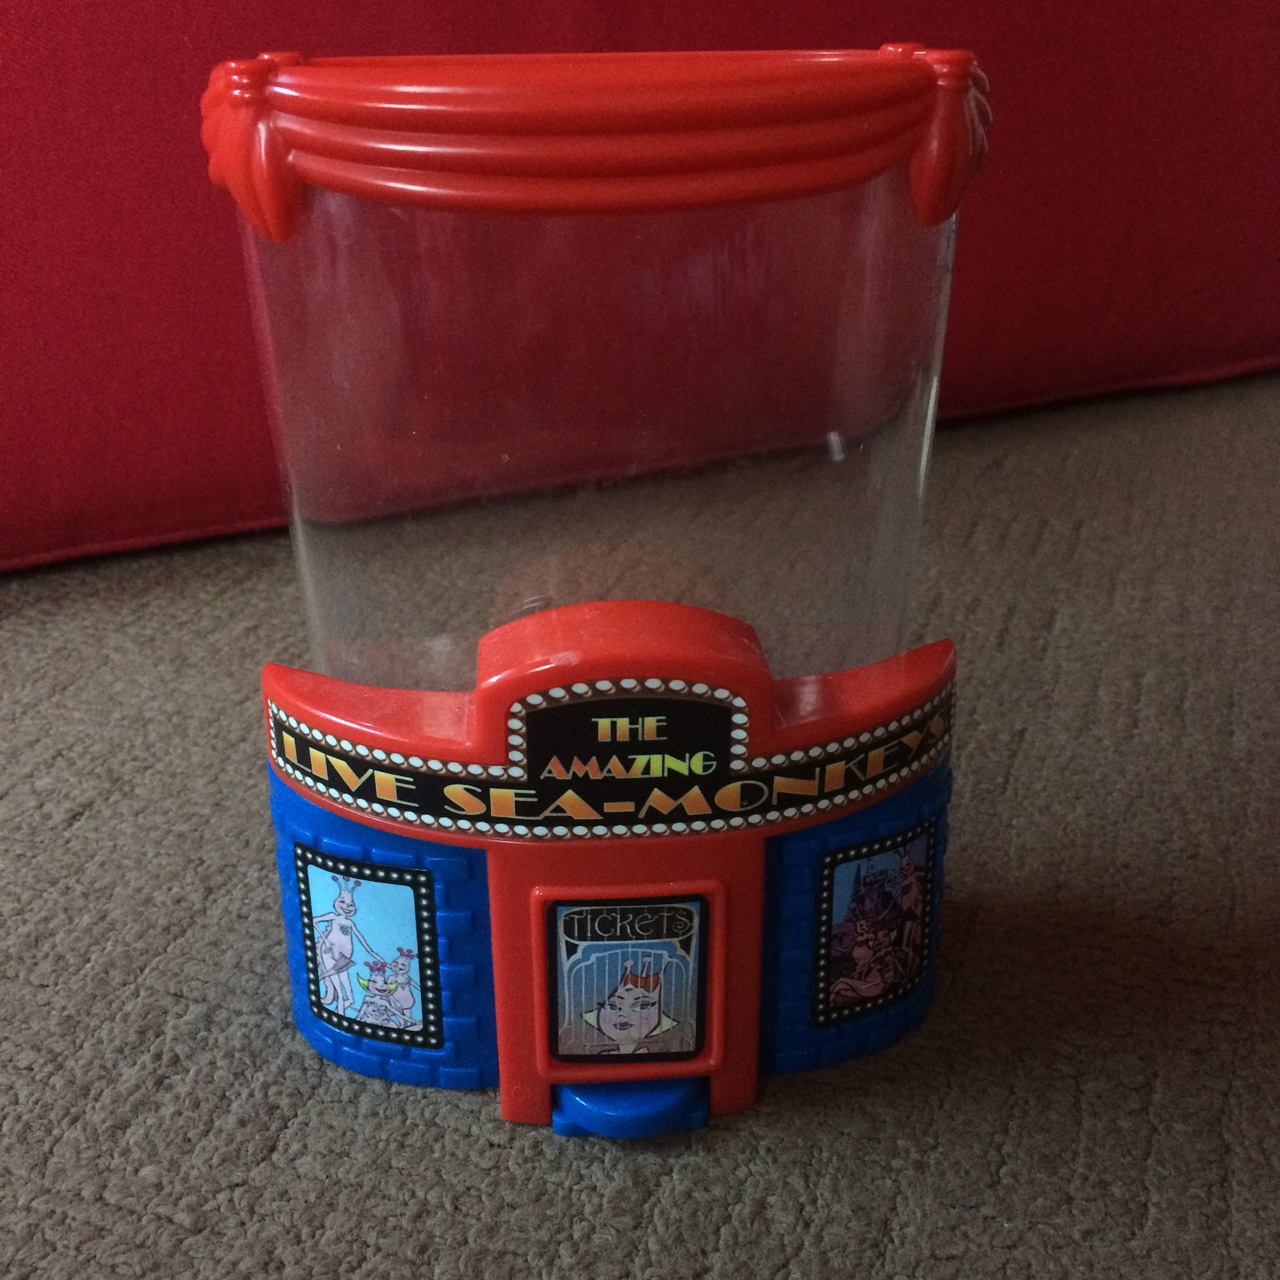 Brand new Sea Monkey tank with theatrical theme 'The